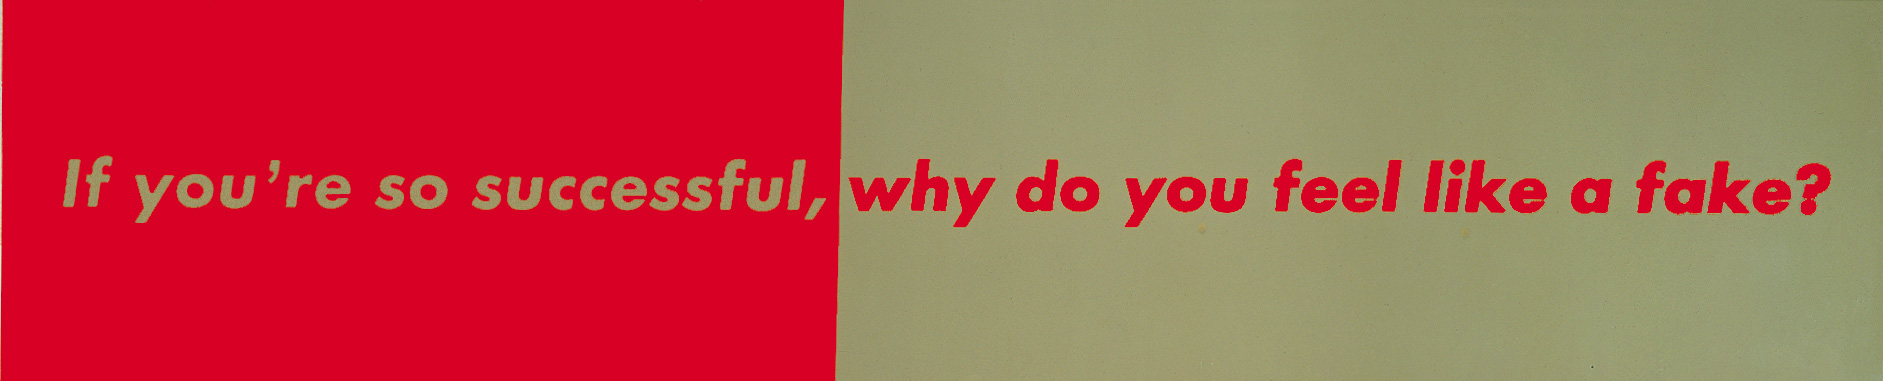 Barbara Kruger - Untitled (If you're so successful, why do you feel like a fake?), 1987, photographic silkscreen on mirrored glass